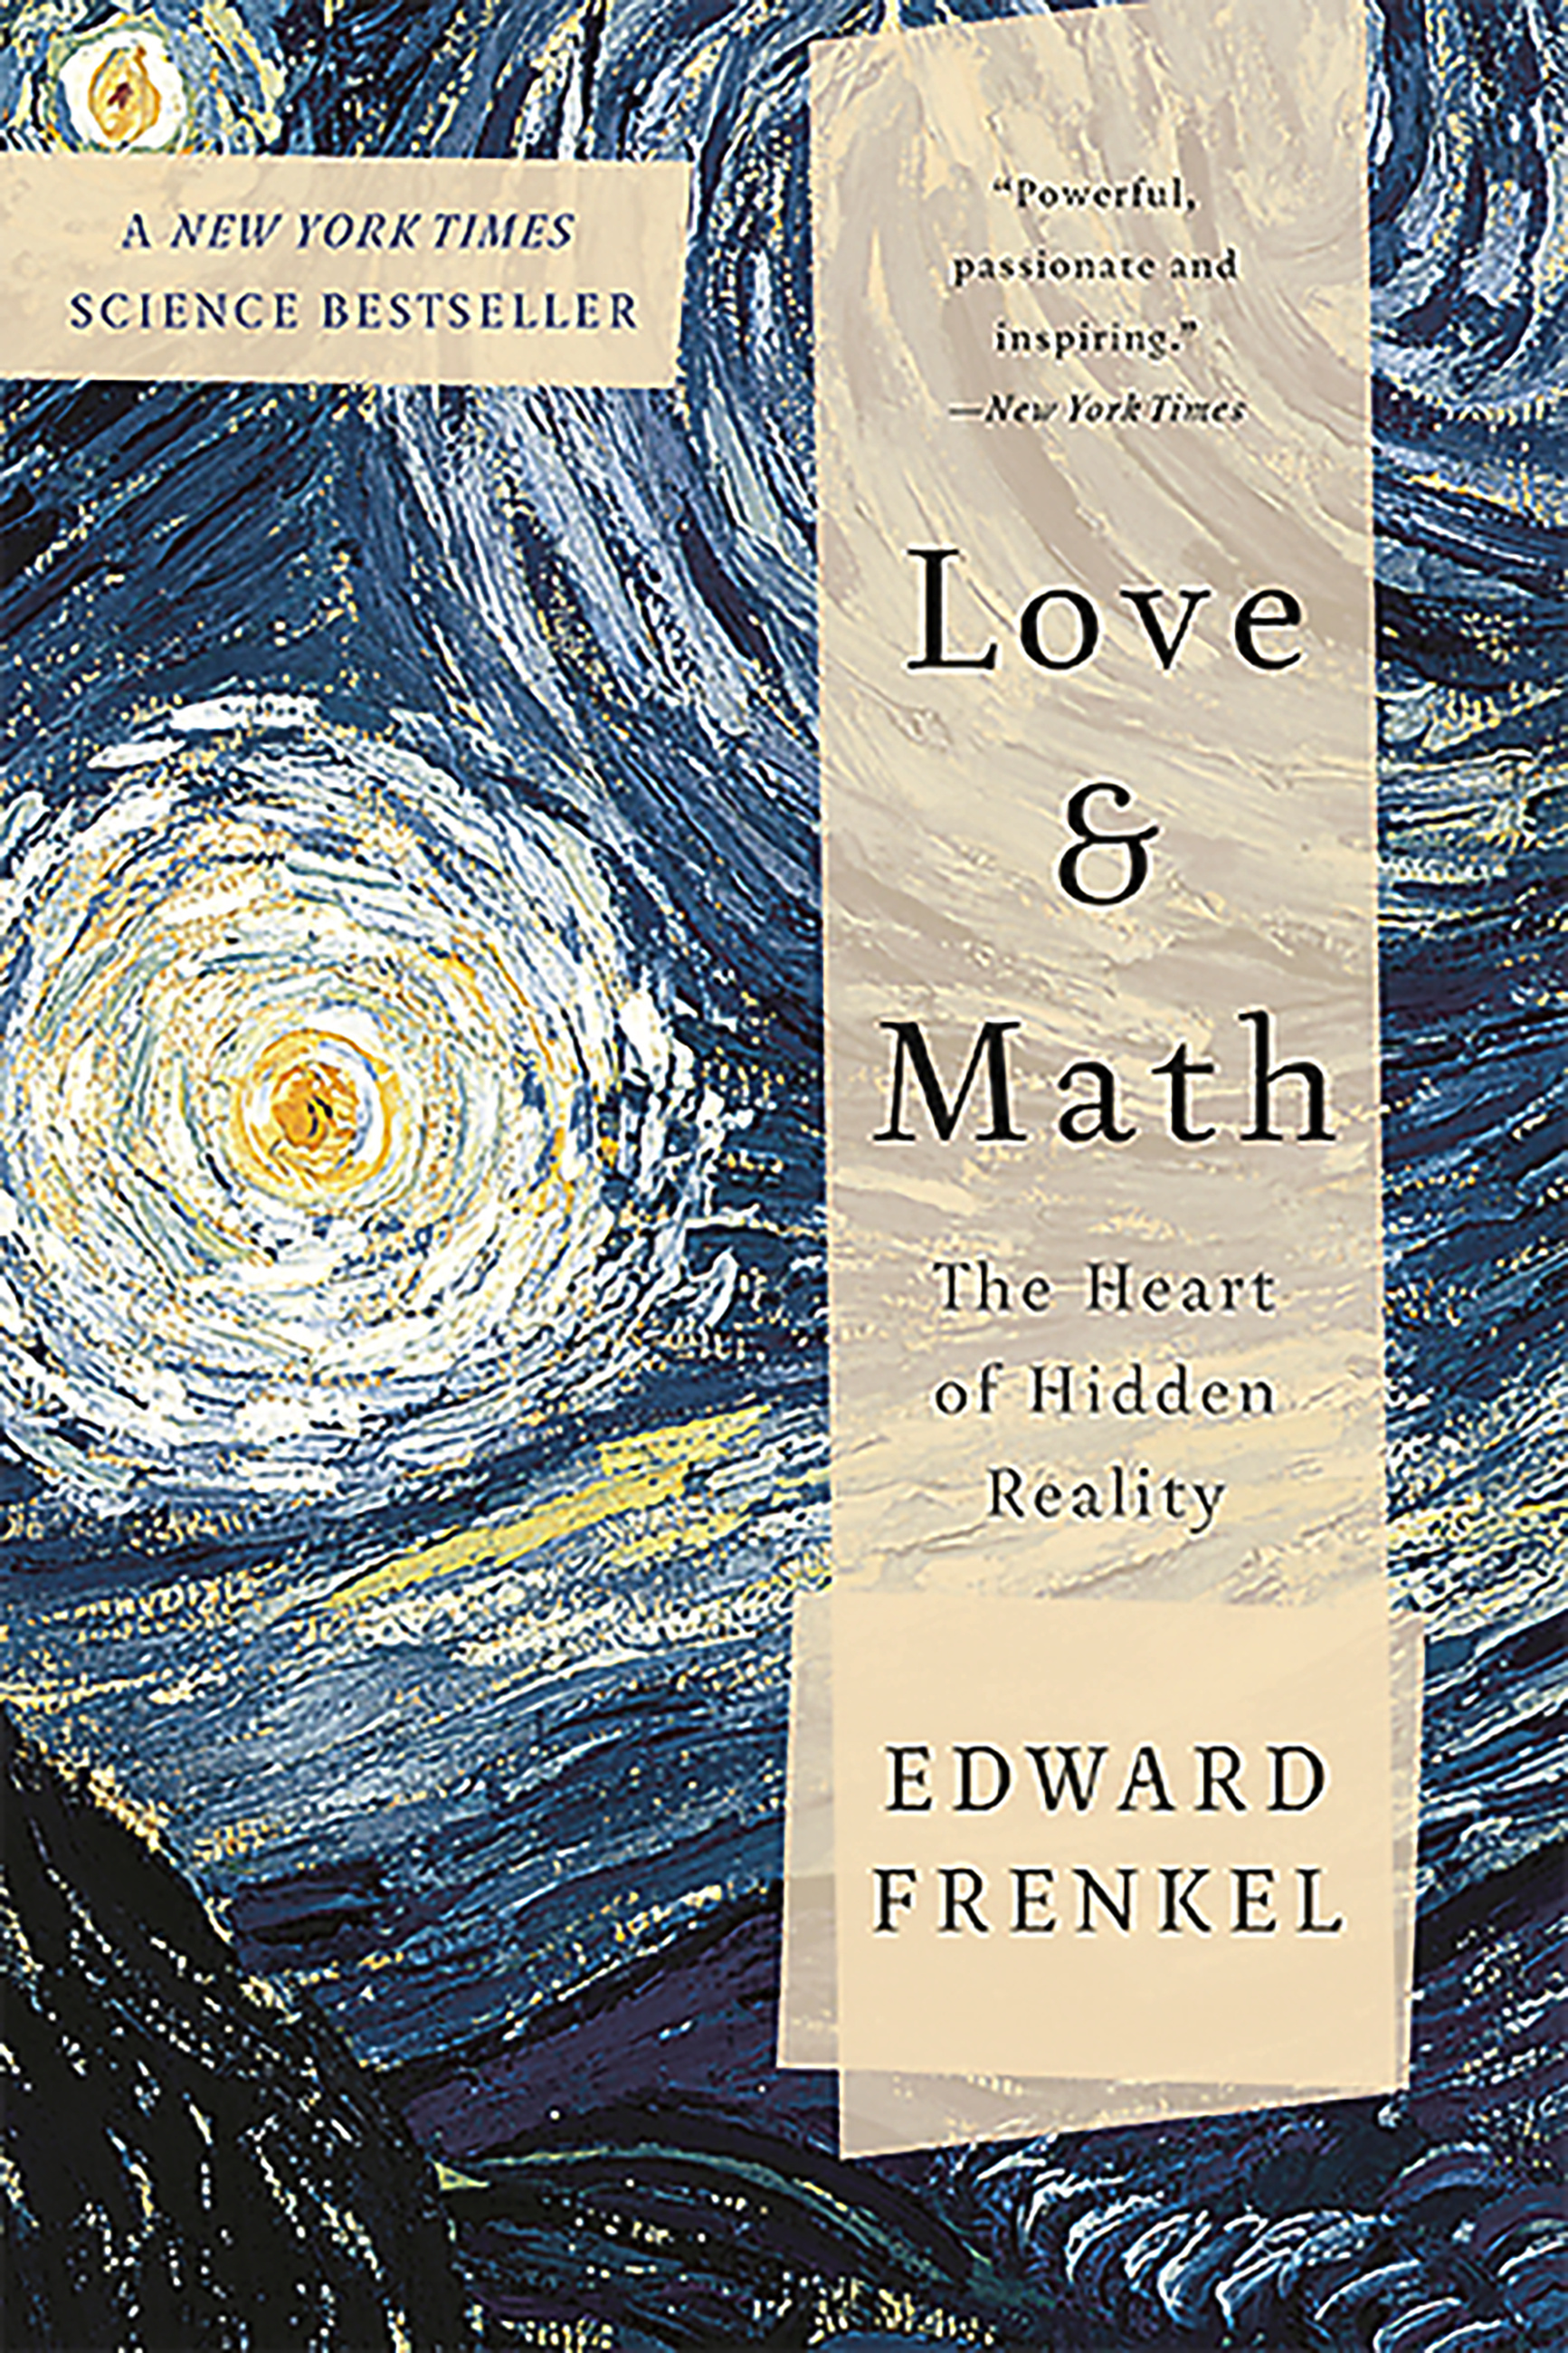 Love and Math by Edward Frenkel | Basic Books